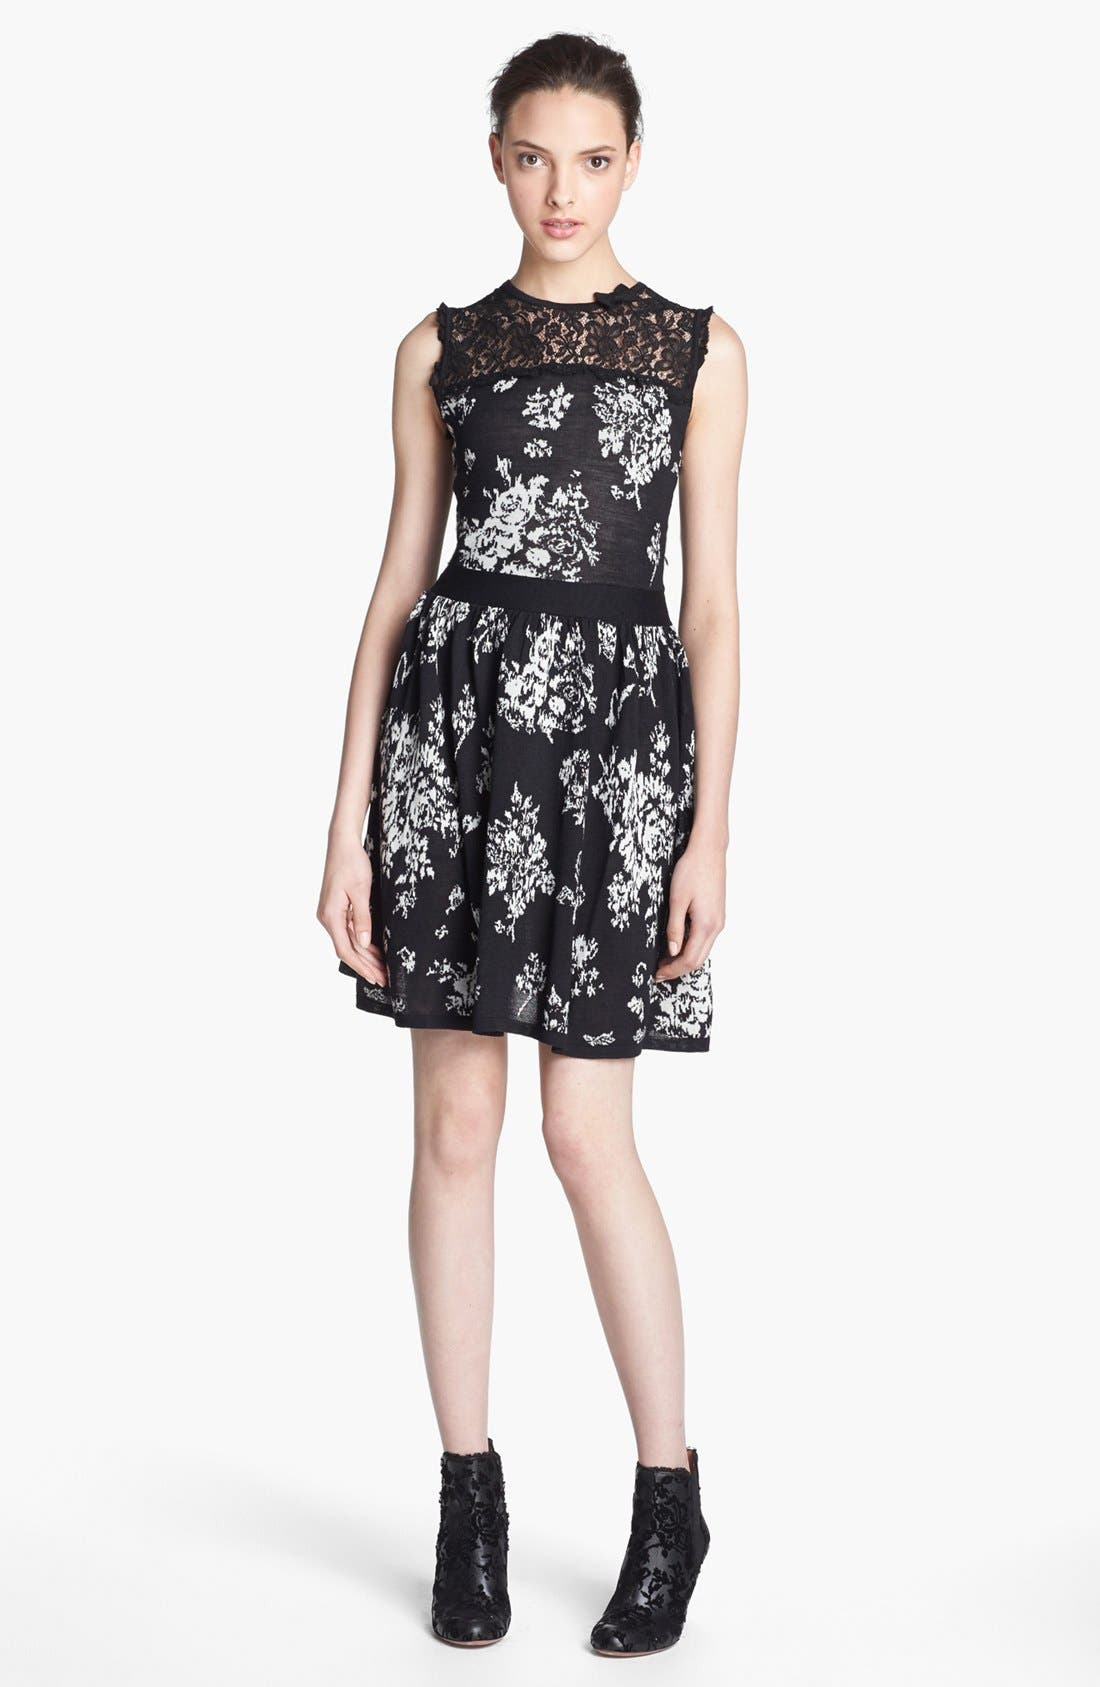 Main Image - RED Valentino Lace & Floral Jacquard Dress